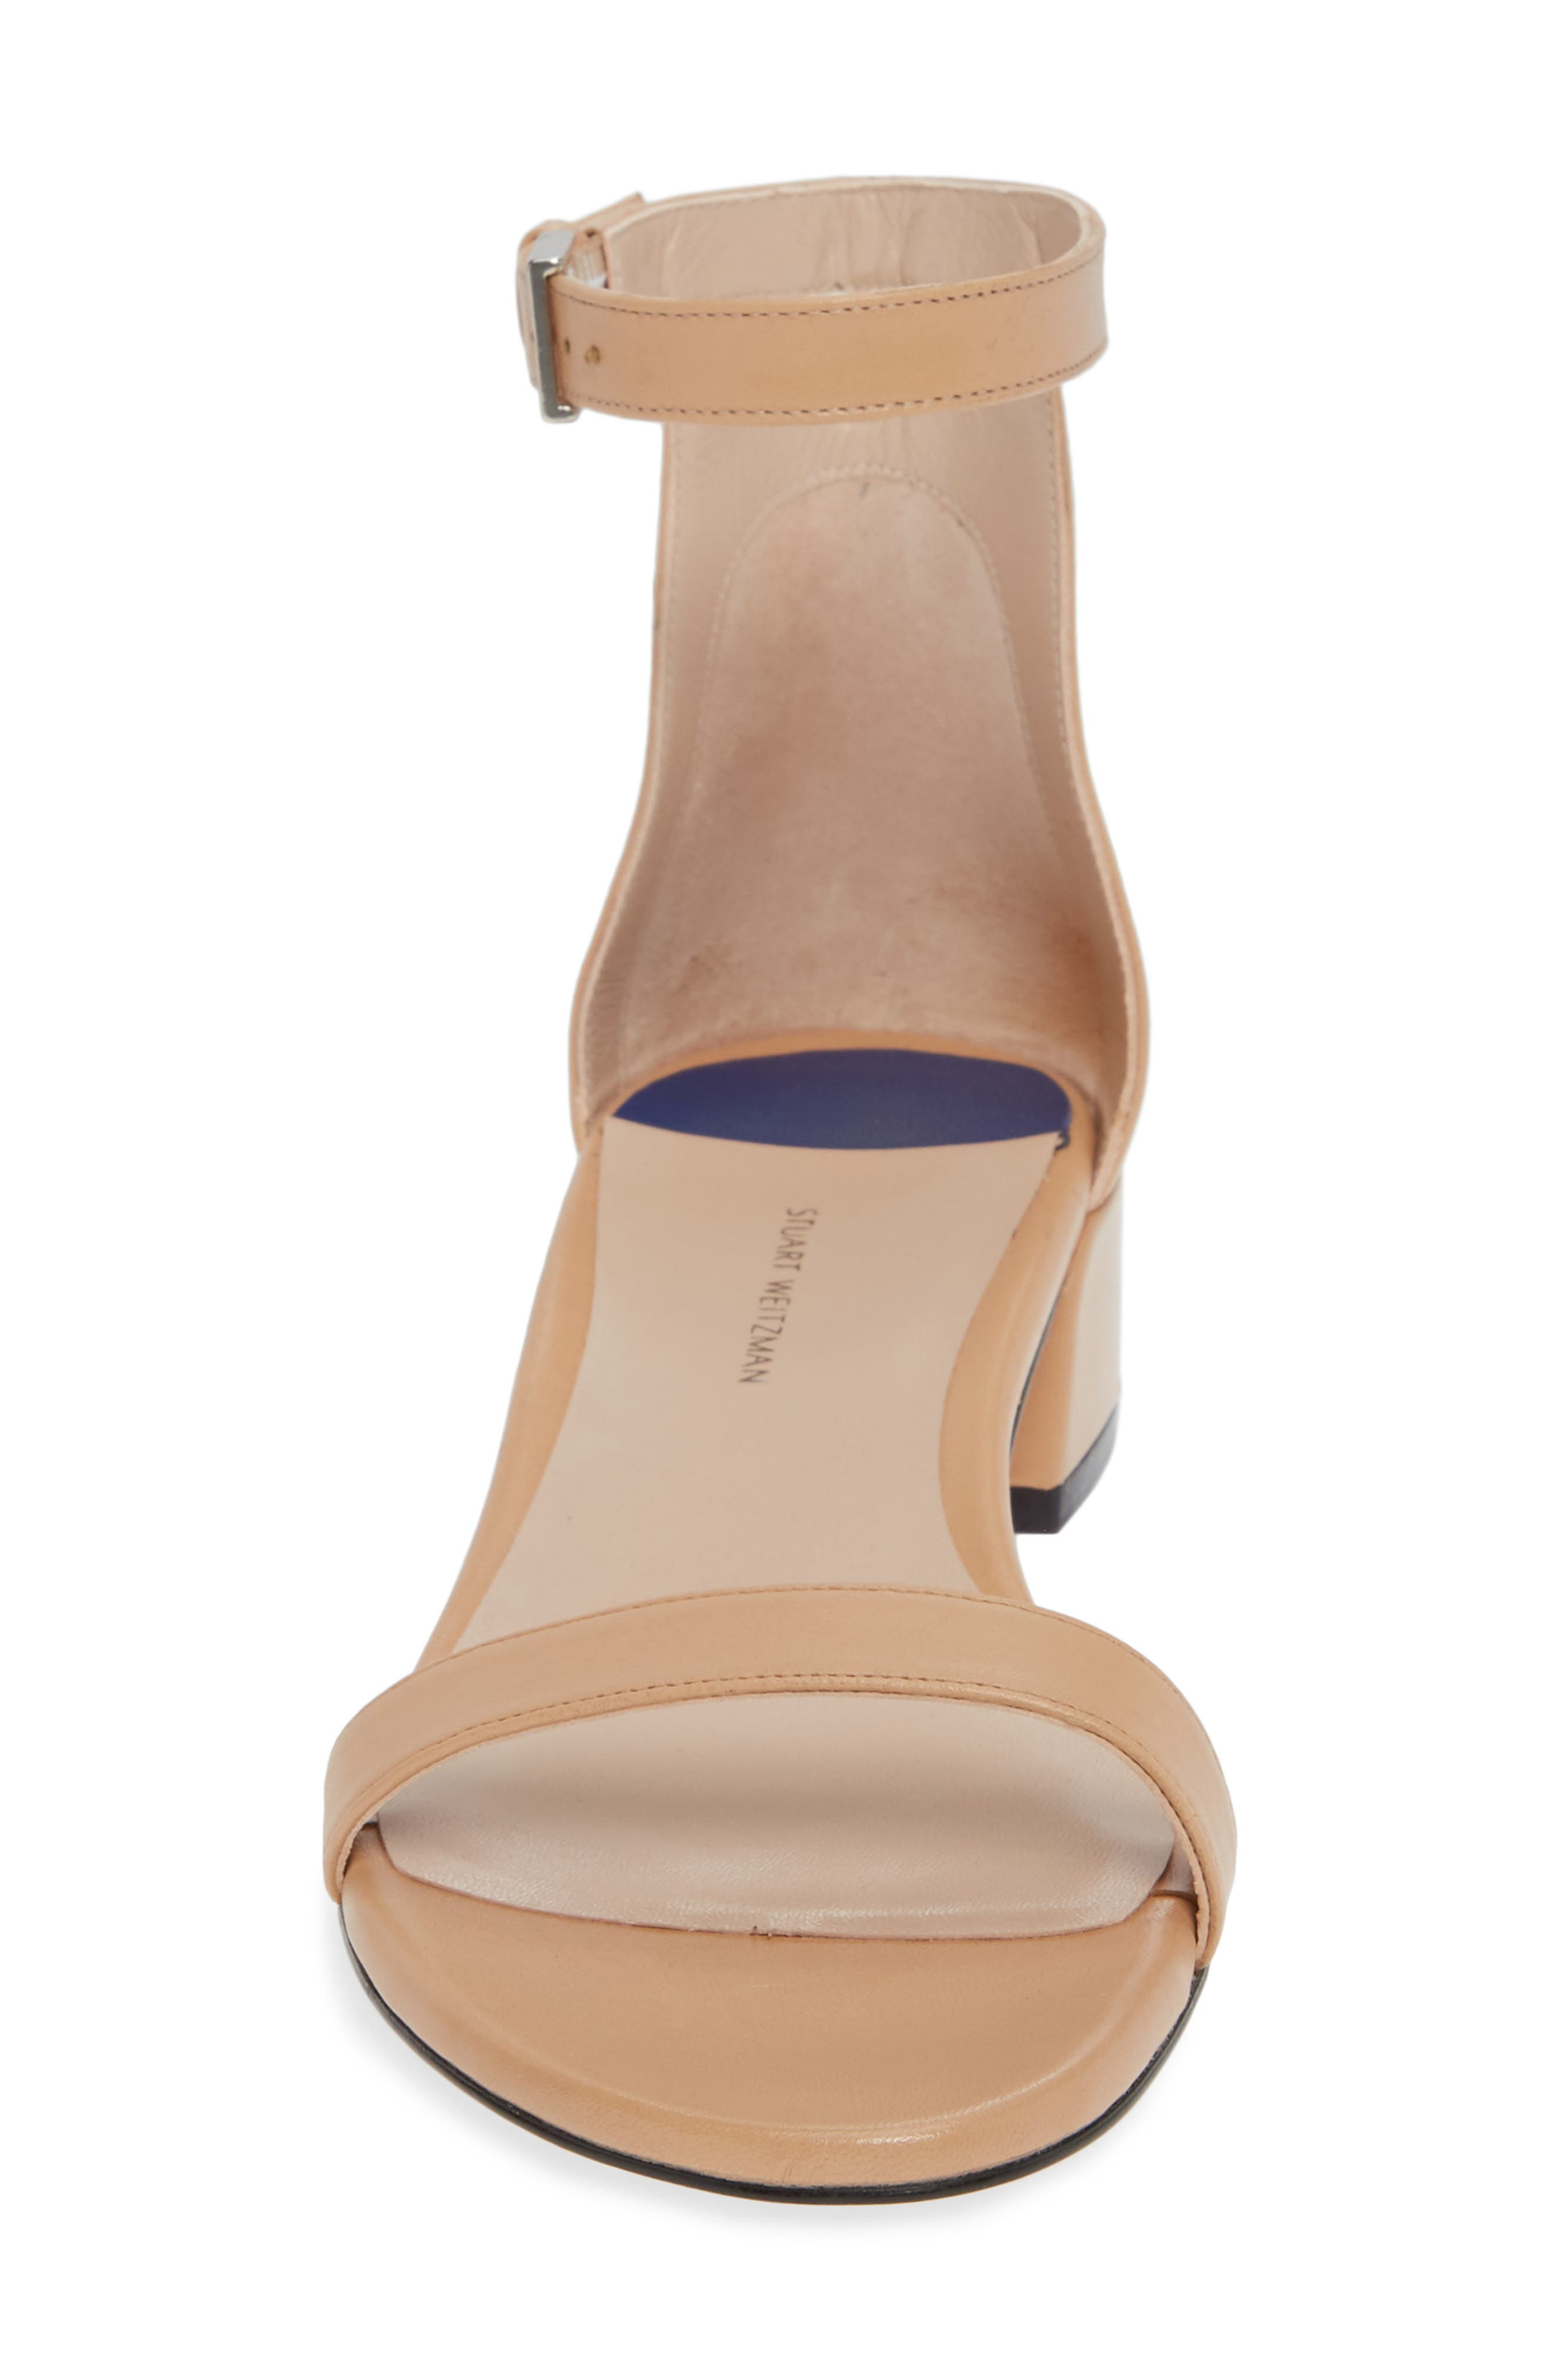 STUART WEITZMAN,                             Nudist Sandal,                             Alternate thumbnail 4, color,                             273